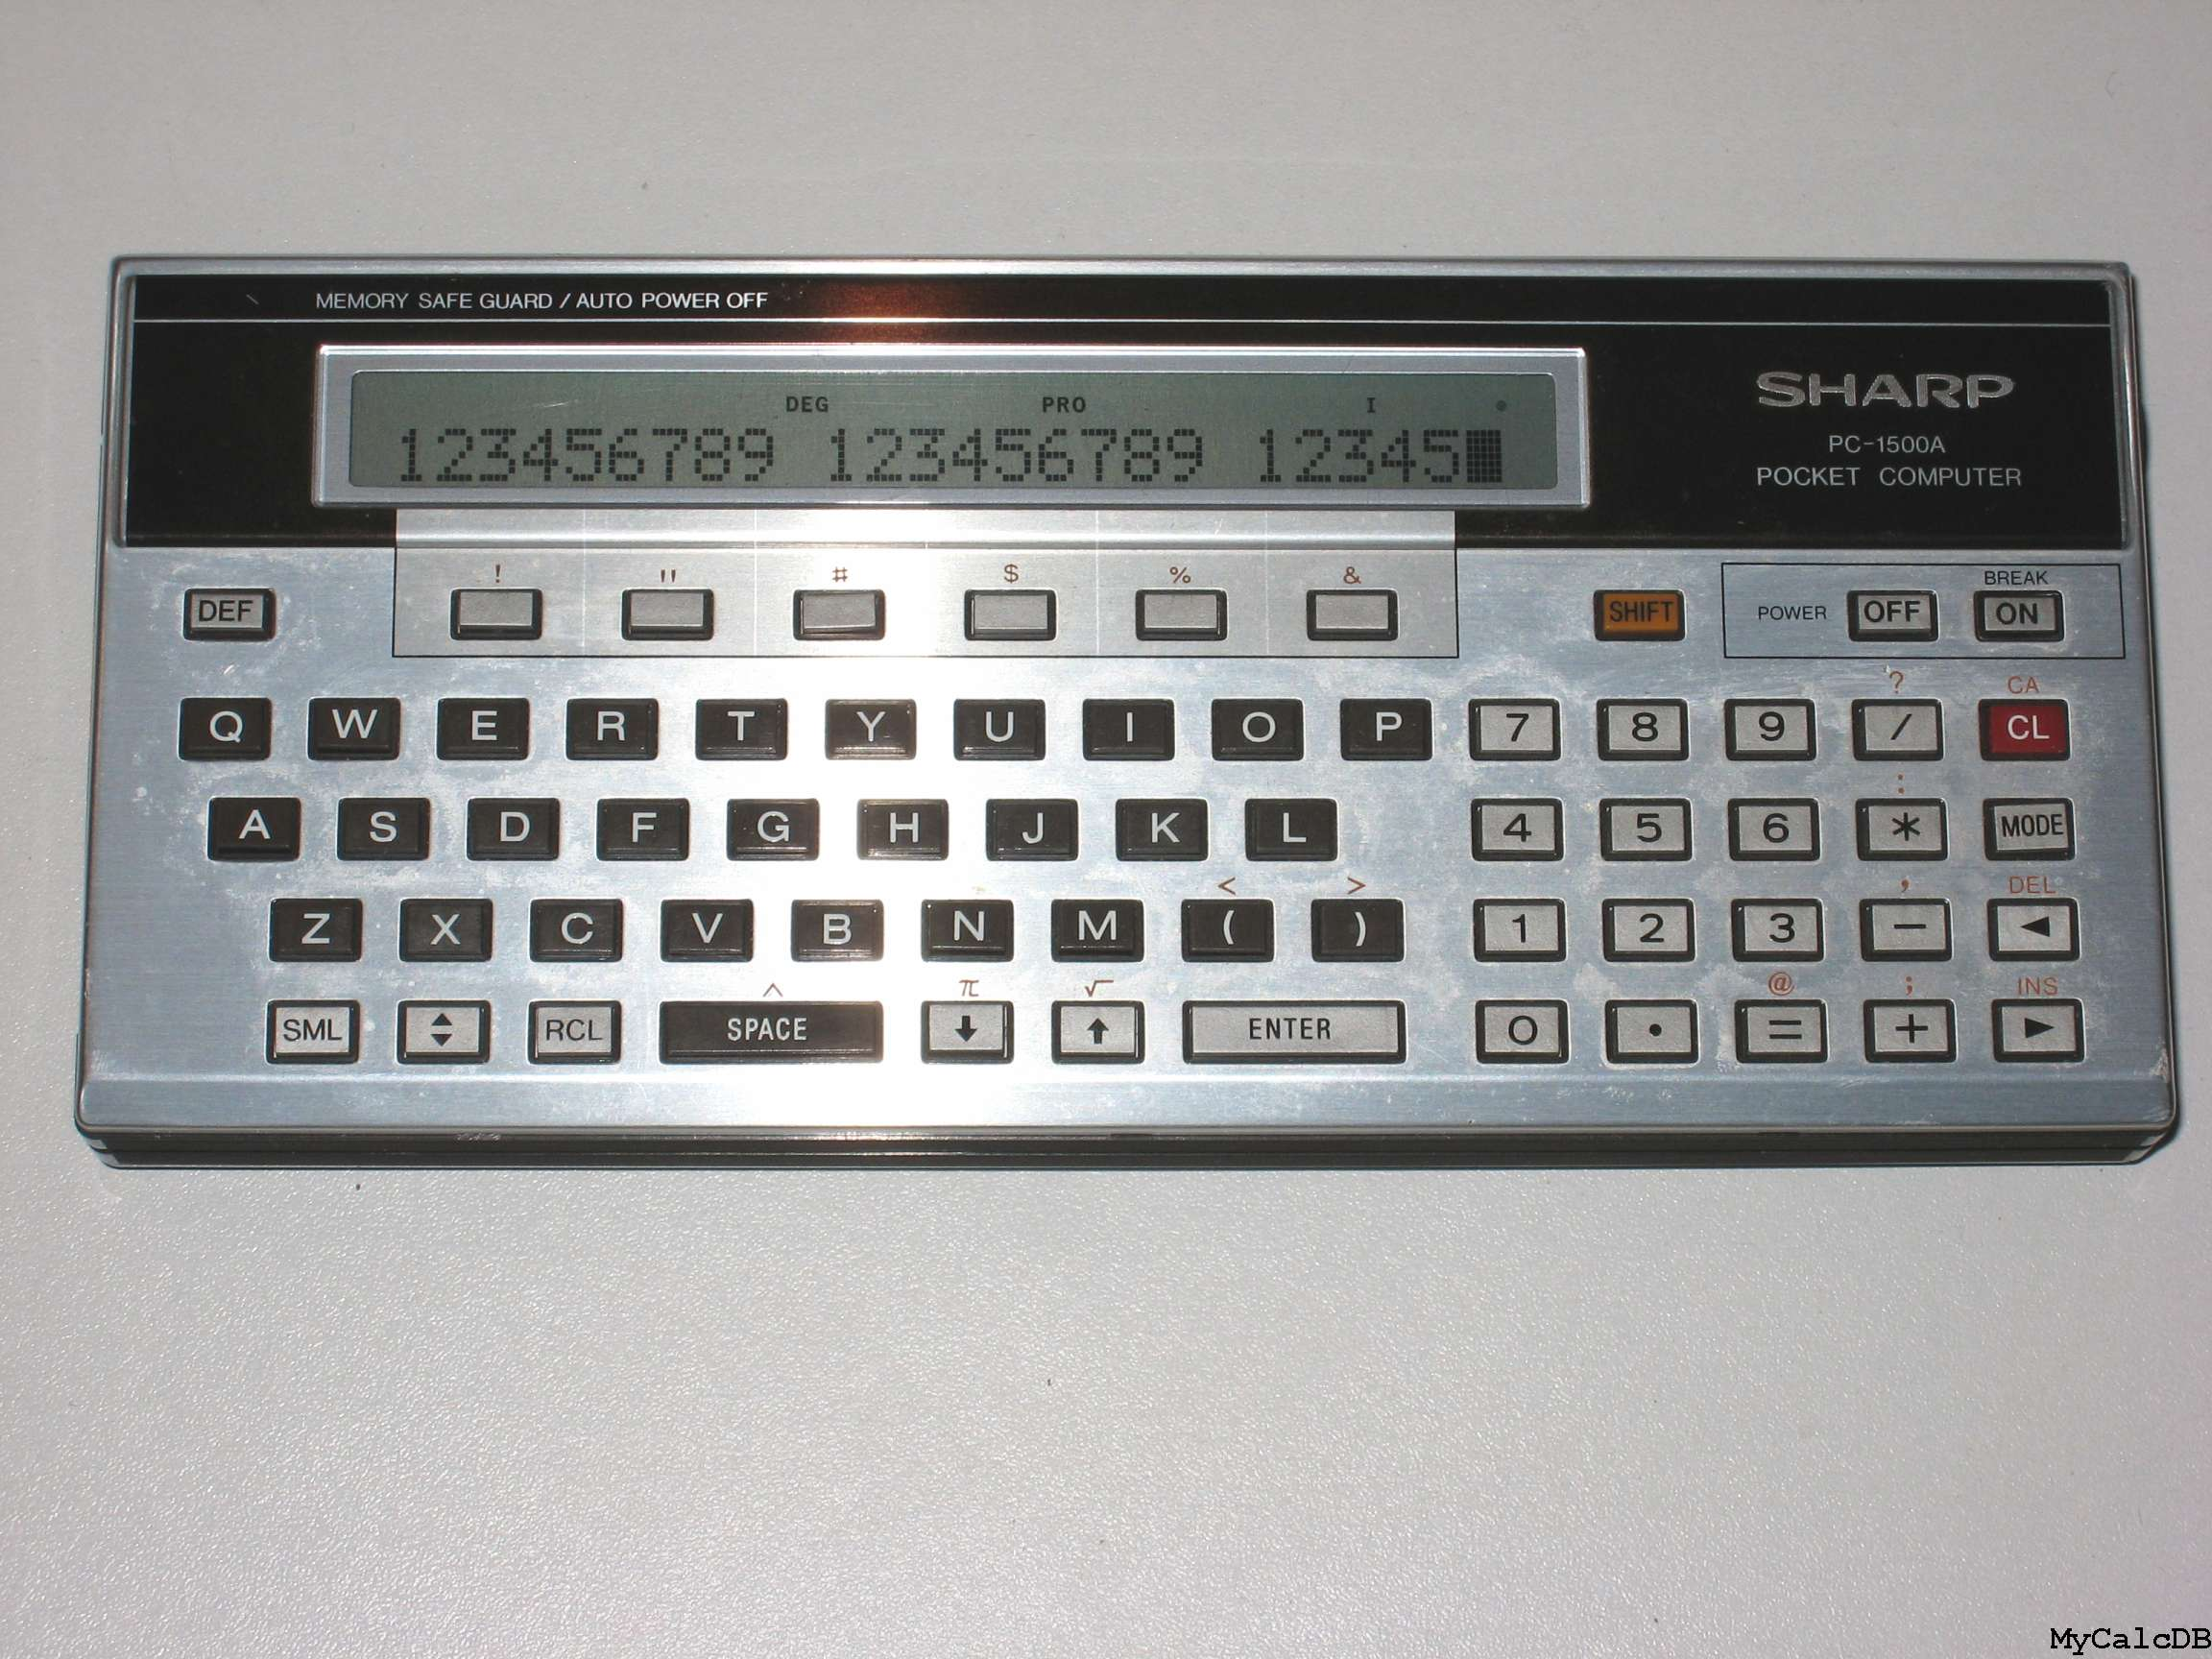 Sharp PC-1500A